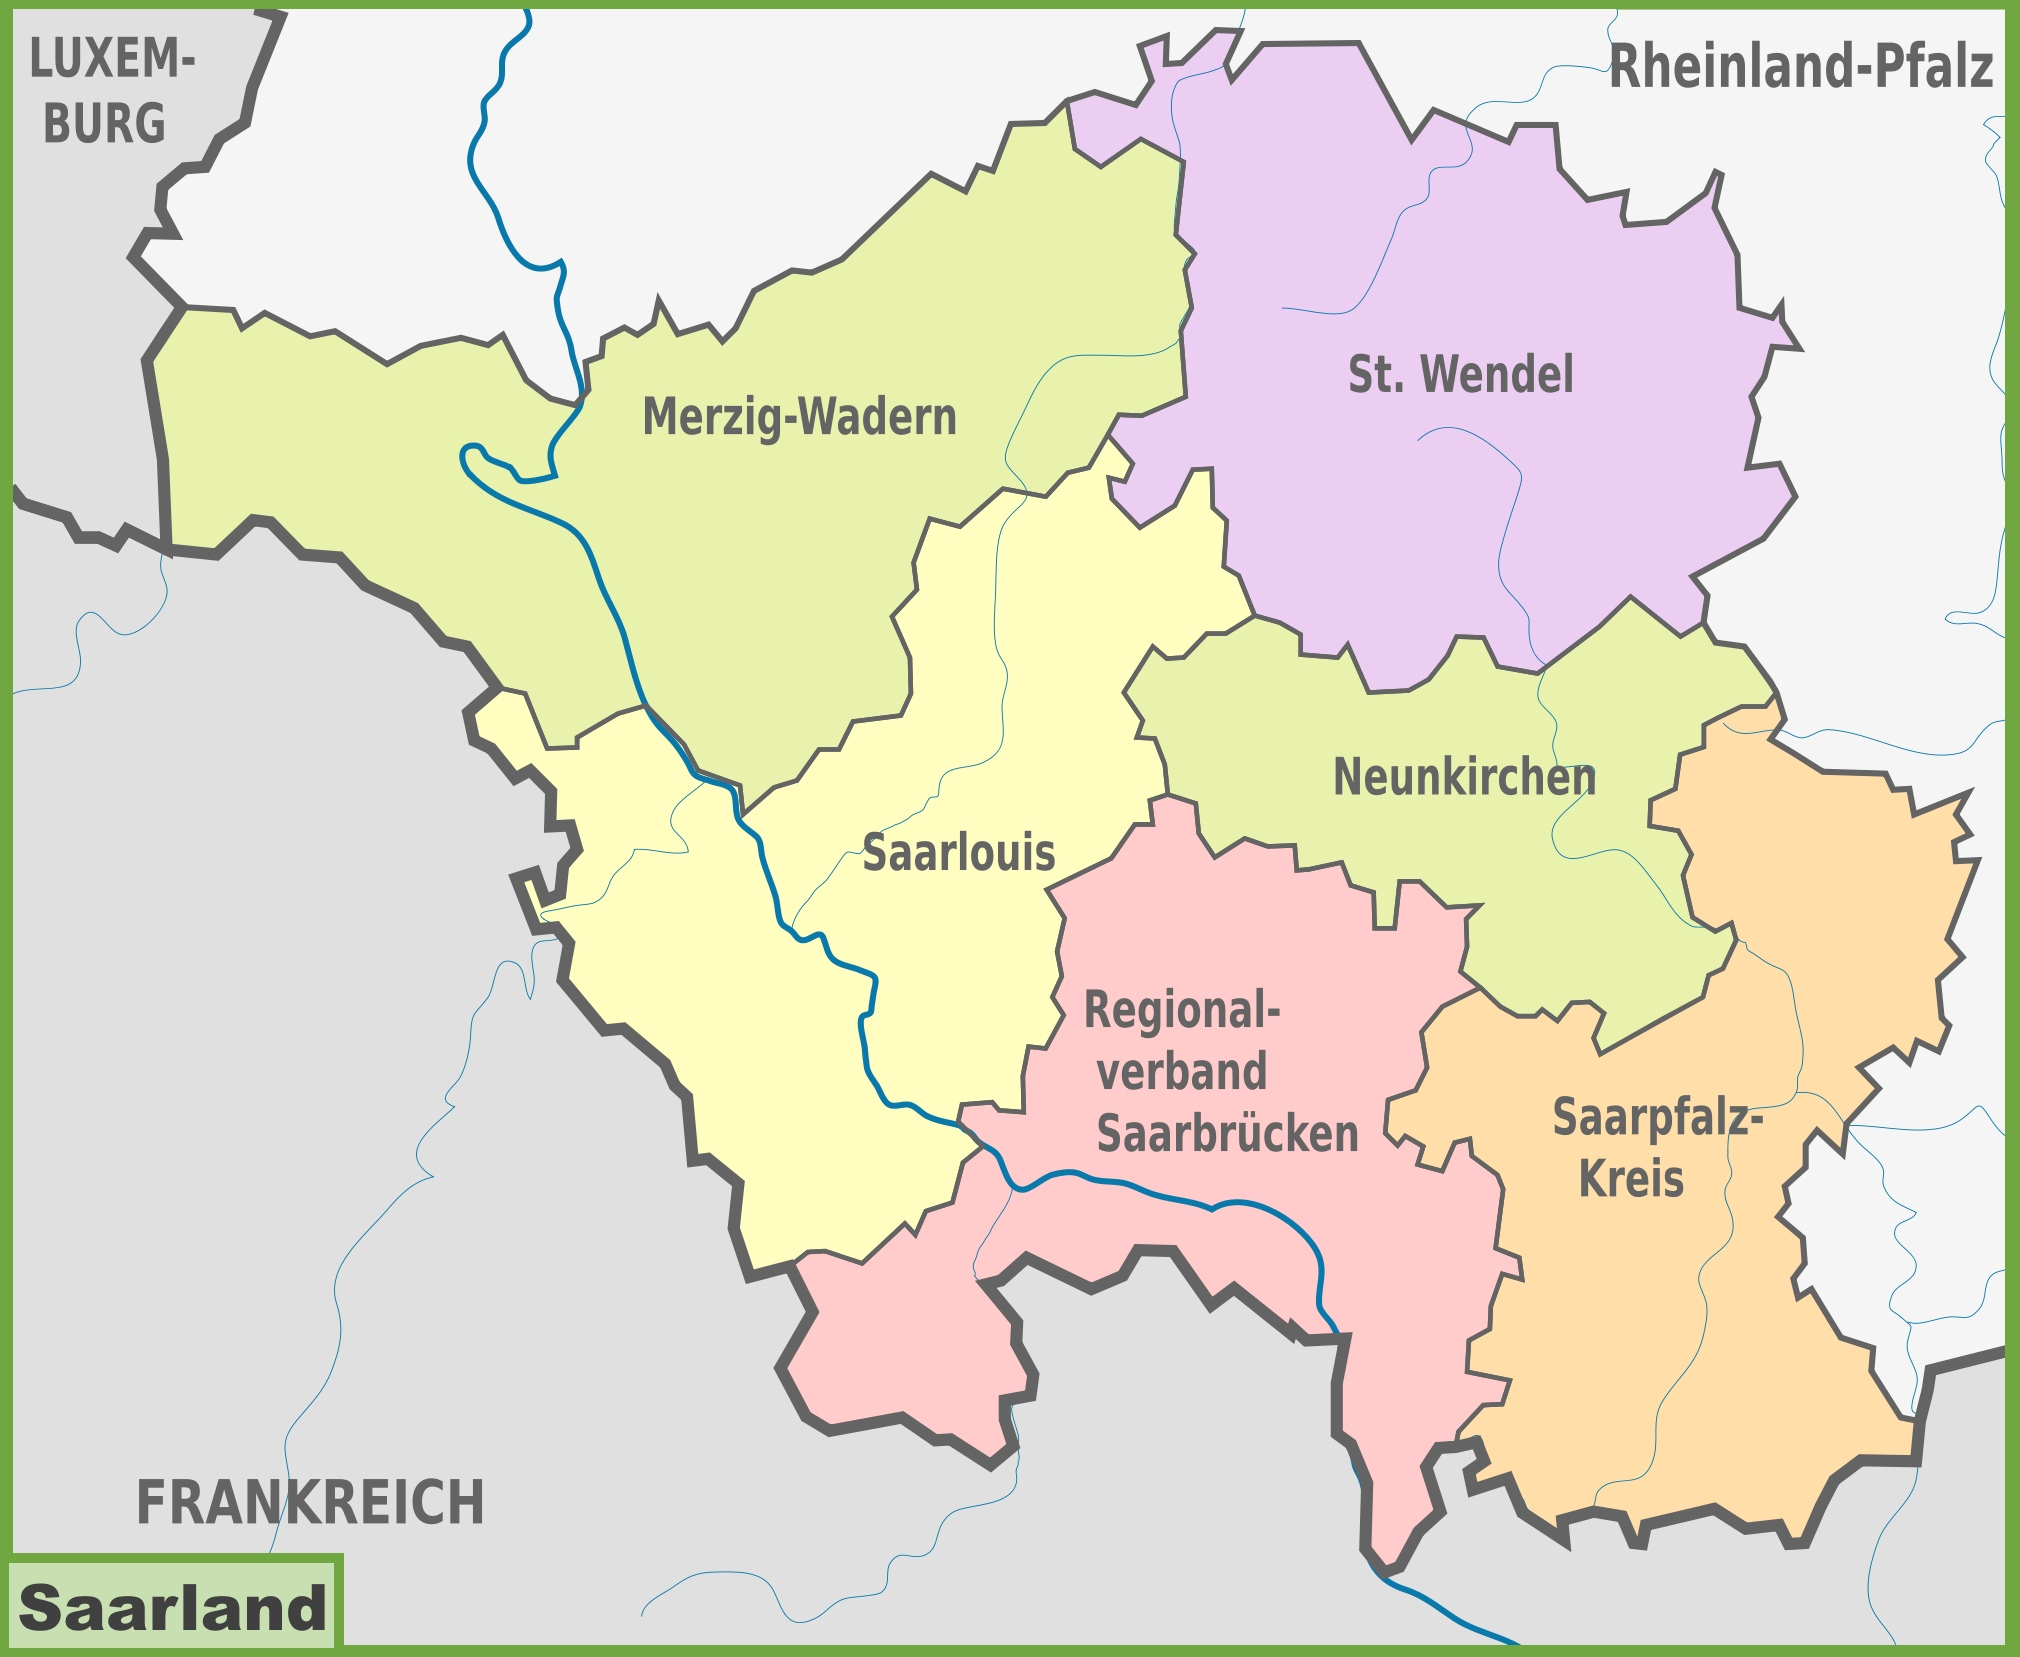 Administrative divisions map of Saarland